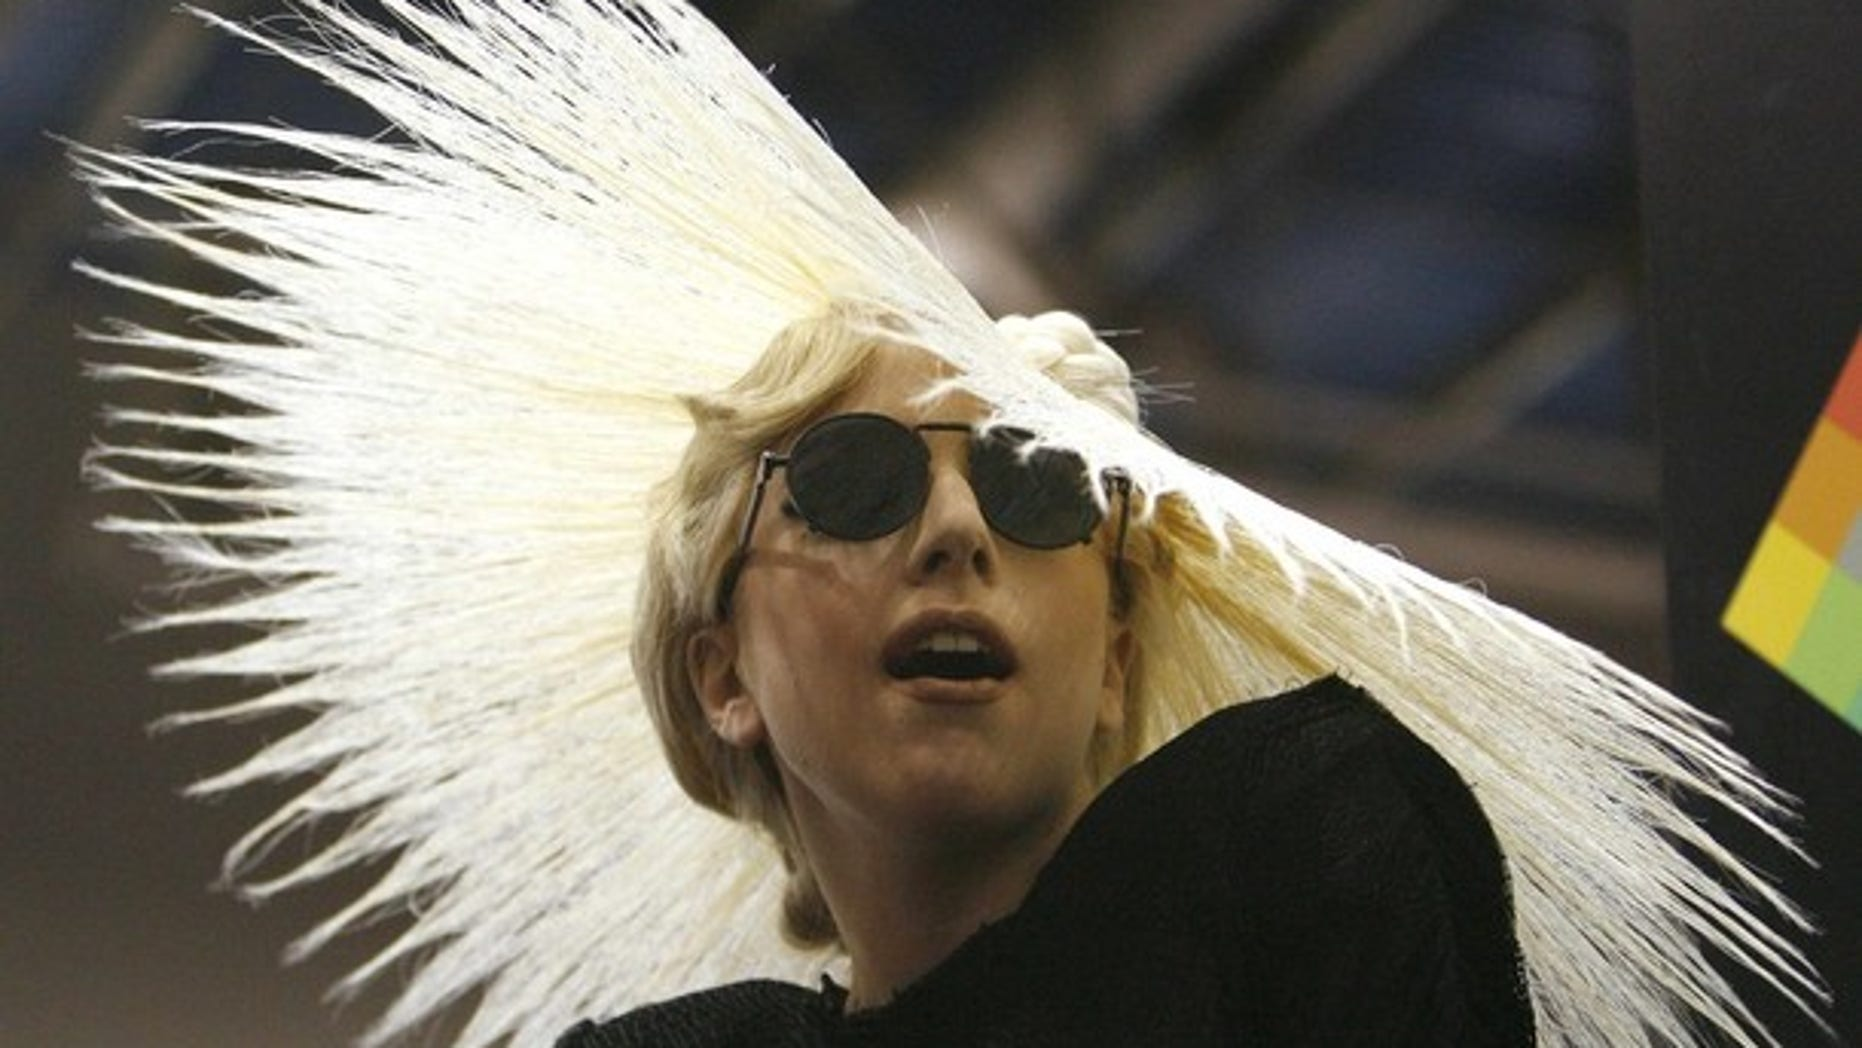 Singer Lady Gaga attends a media event where she was announced as Polaroid creative director at the 2010 International Consumer Electronics Show (CES) in Las Vegas January 7, 2010. The show runs January 7-10.  REUTERS/Mario Anzuoni   (UNITED STATES - Tags: BUSINESS ENTERTAINMENT)